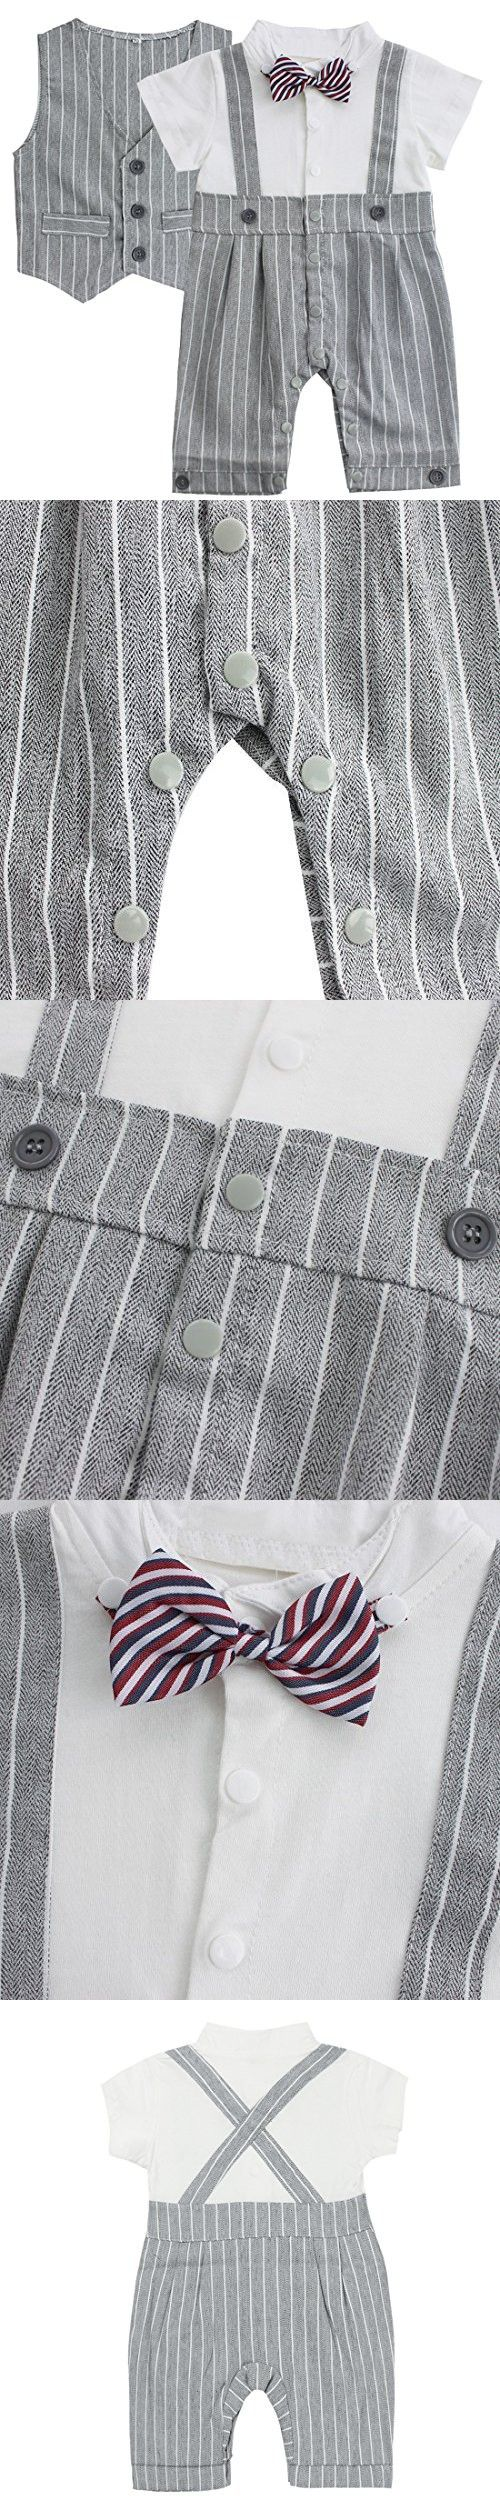 FEESHOW Baby Boys' Cotton Gentleman Romper Vest with Bowtie Outfit Set Gray 3-6 Months